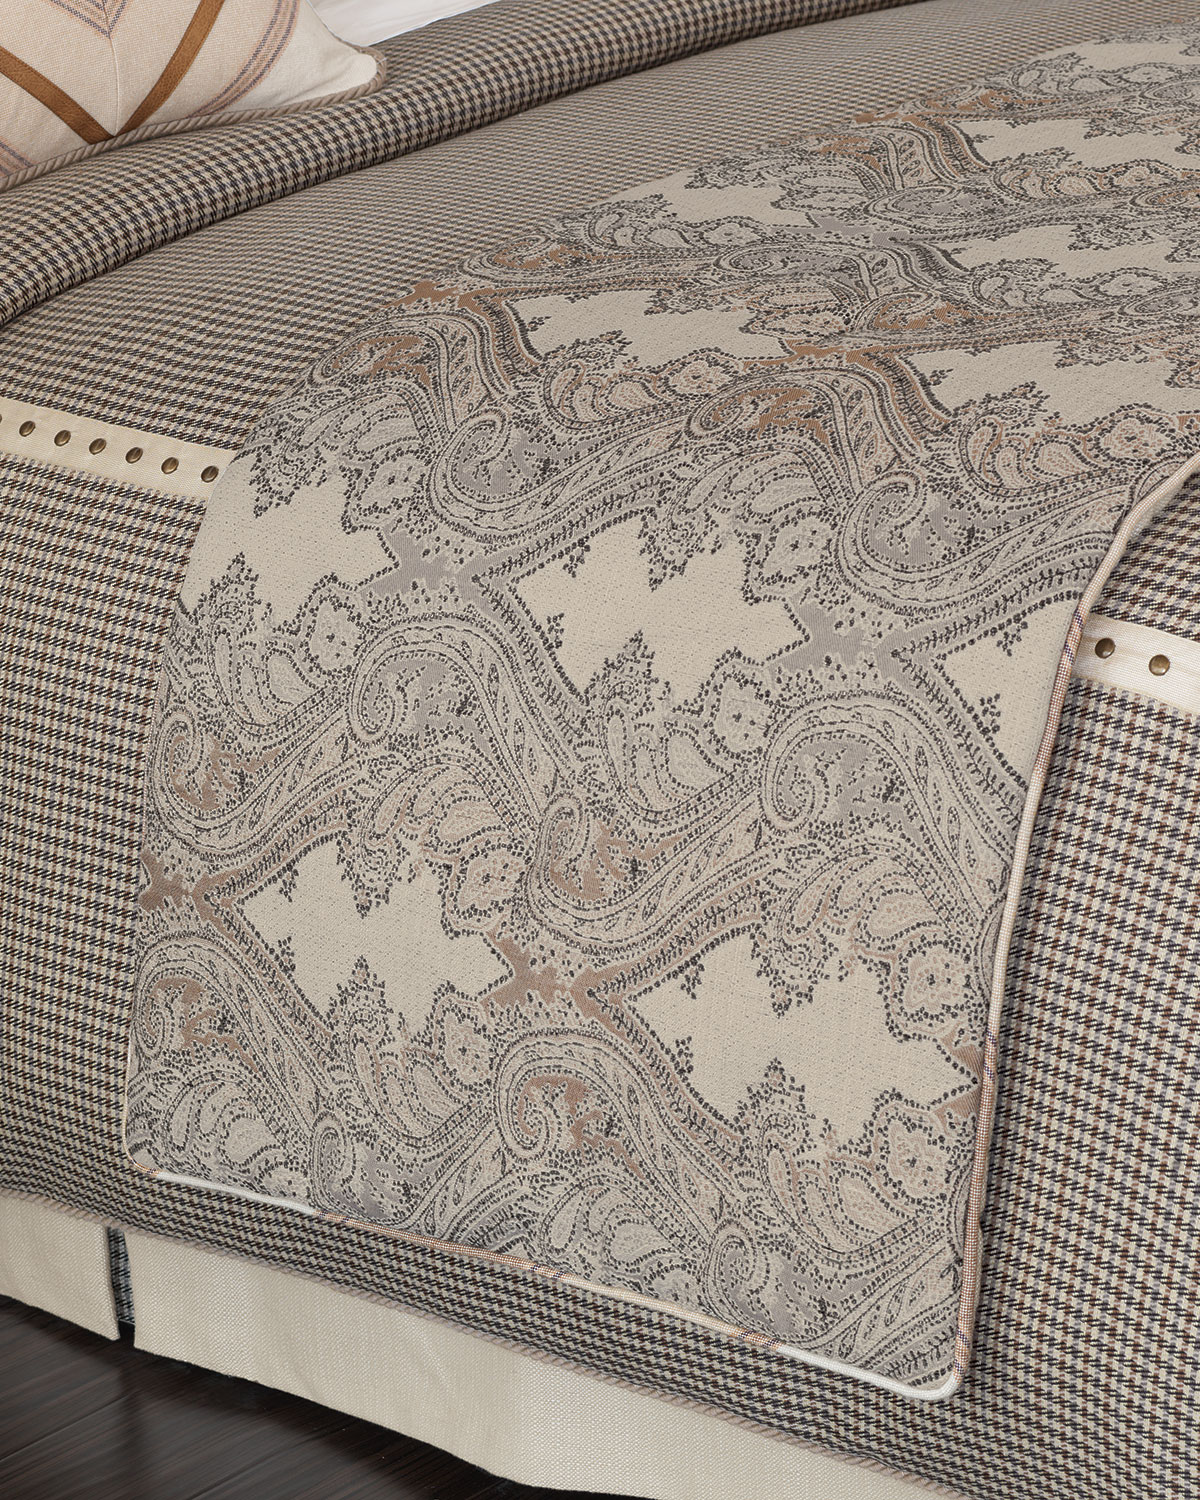 eastern accents king connor scarf neiman marcus artistic tablecloth better homes and gardens patio furniture dark wood bedside cabinets target threshold gold side table silver